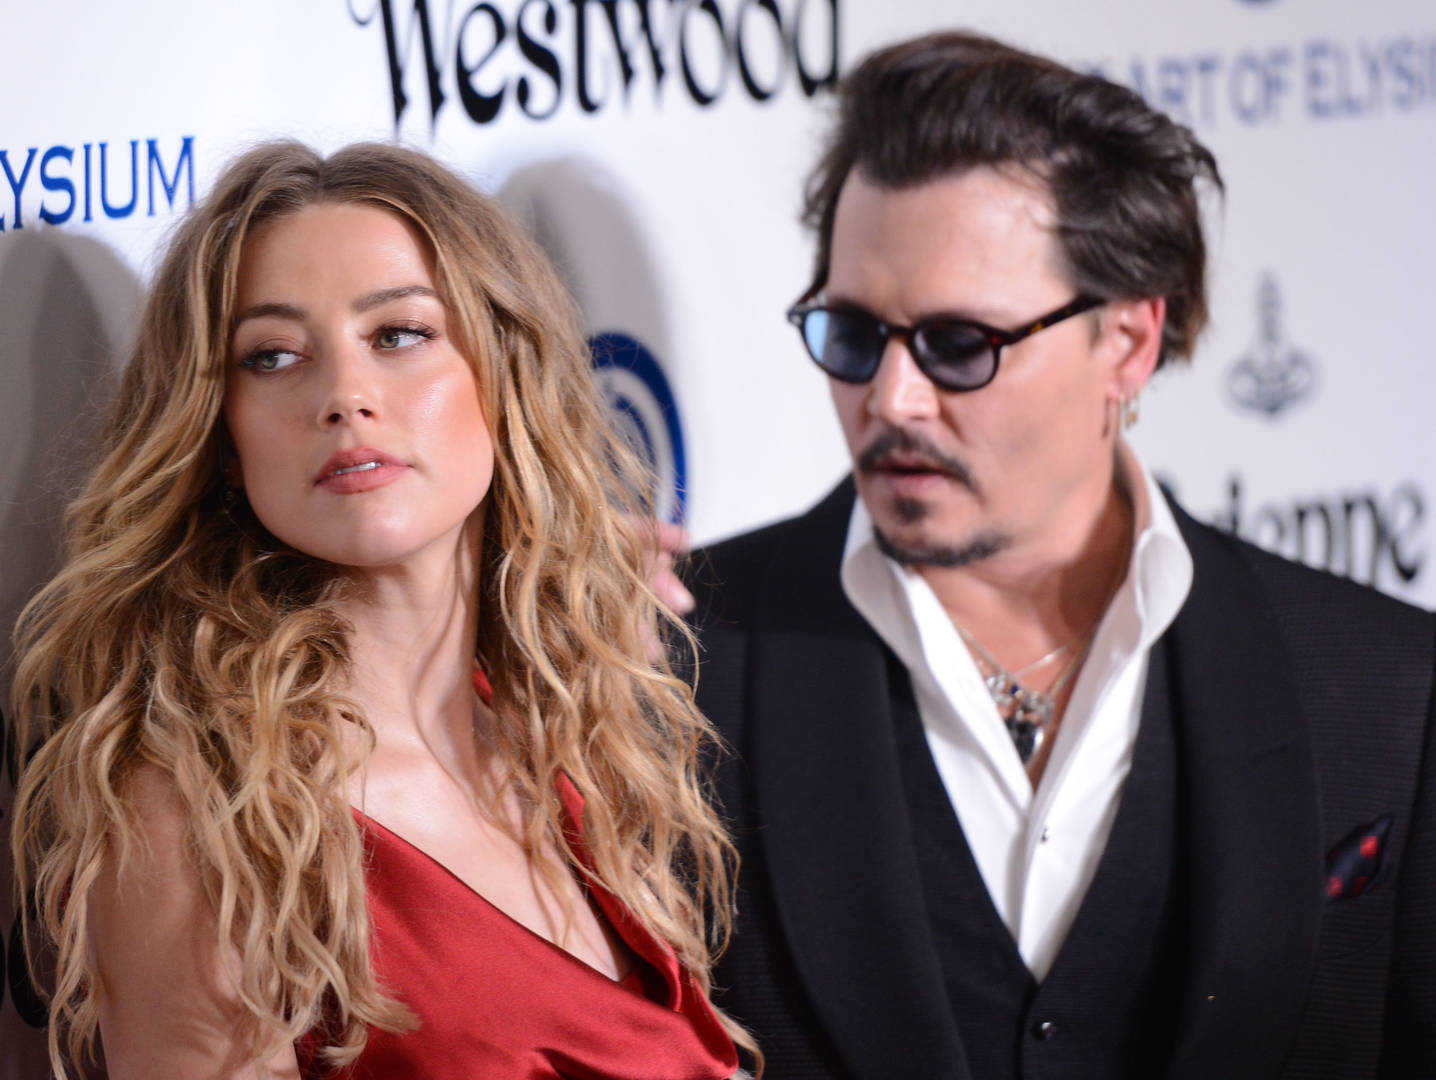 Studio 'freaking out' after new abuse claims against Depp